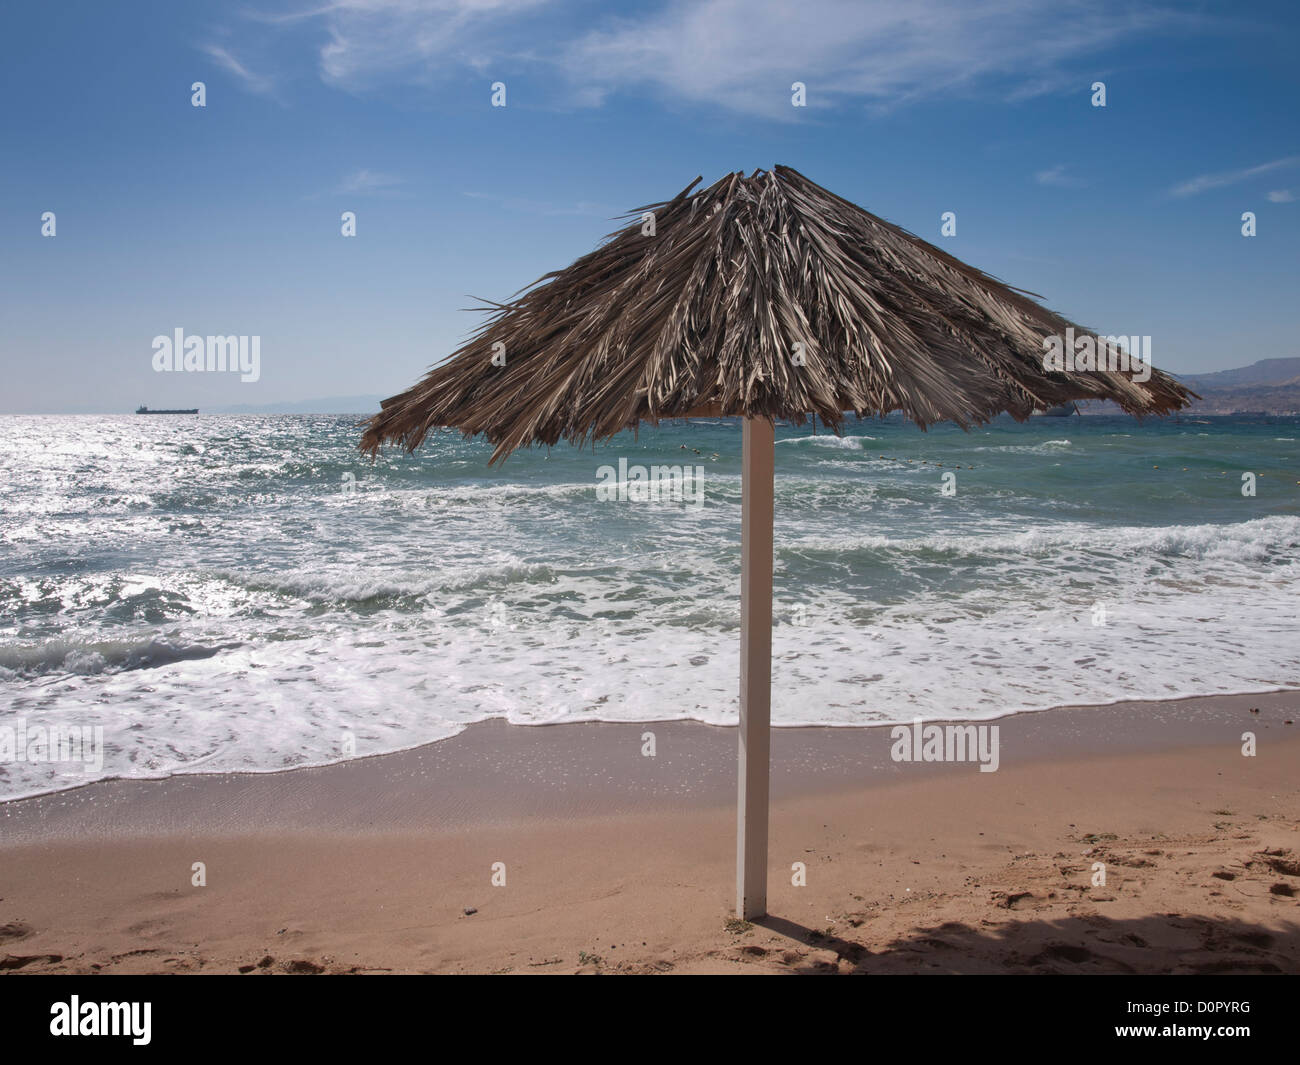 beach in Aqaba Jordan, sand and the Red Sea waves and sun - Stock Image